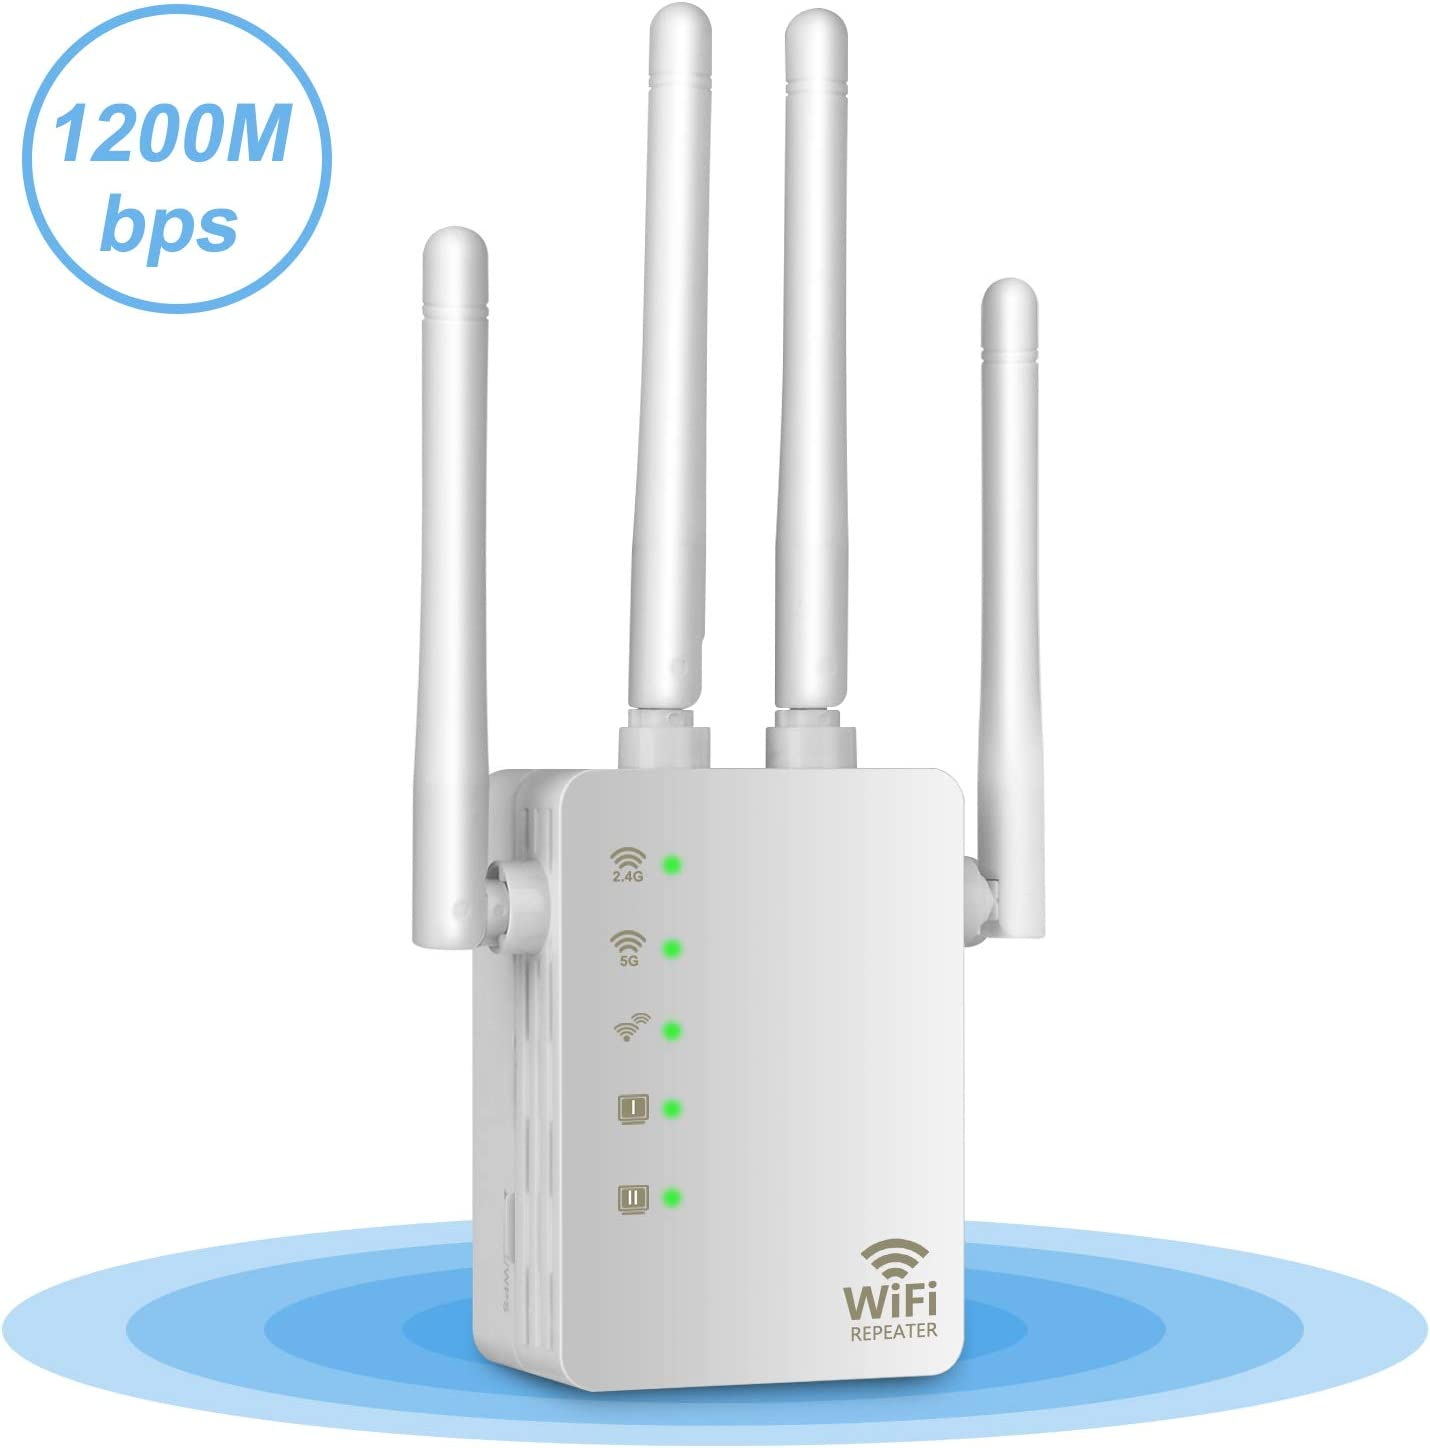 Upgraded 2020 WiFi Extender - 1200Mbps Dual Band Signal Booster Range Extender Wireless Repeater Amplifier 5GHz for Router/Modem, Easy Set-Up, 4 Antennas, Extends WiFi to Smart Home & Alexa Devices